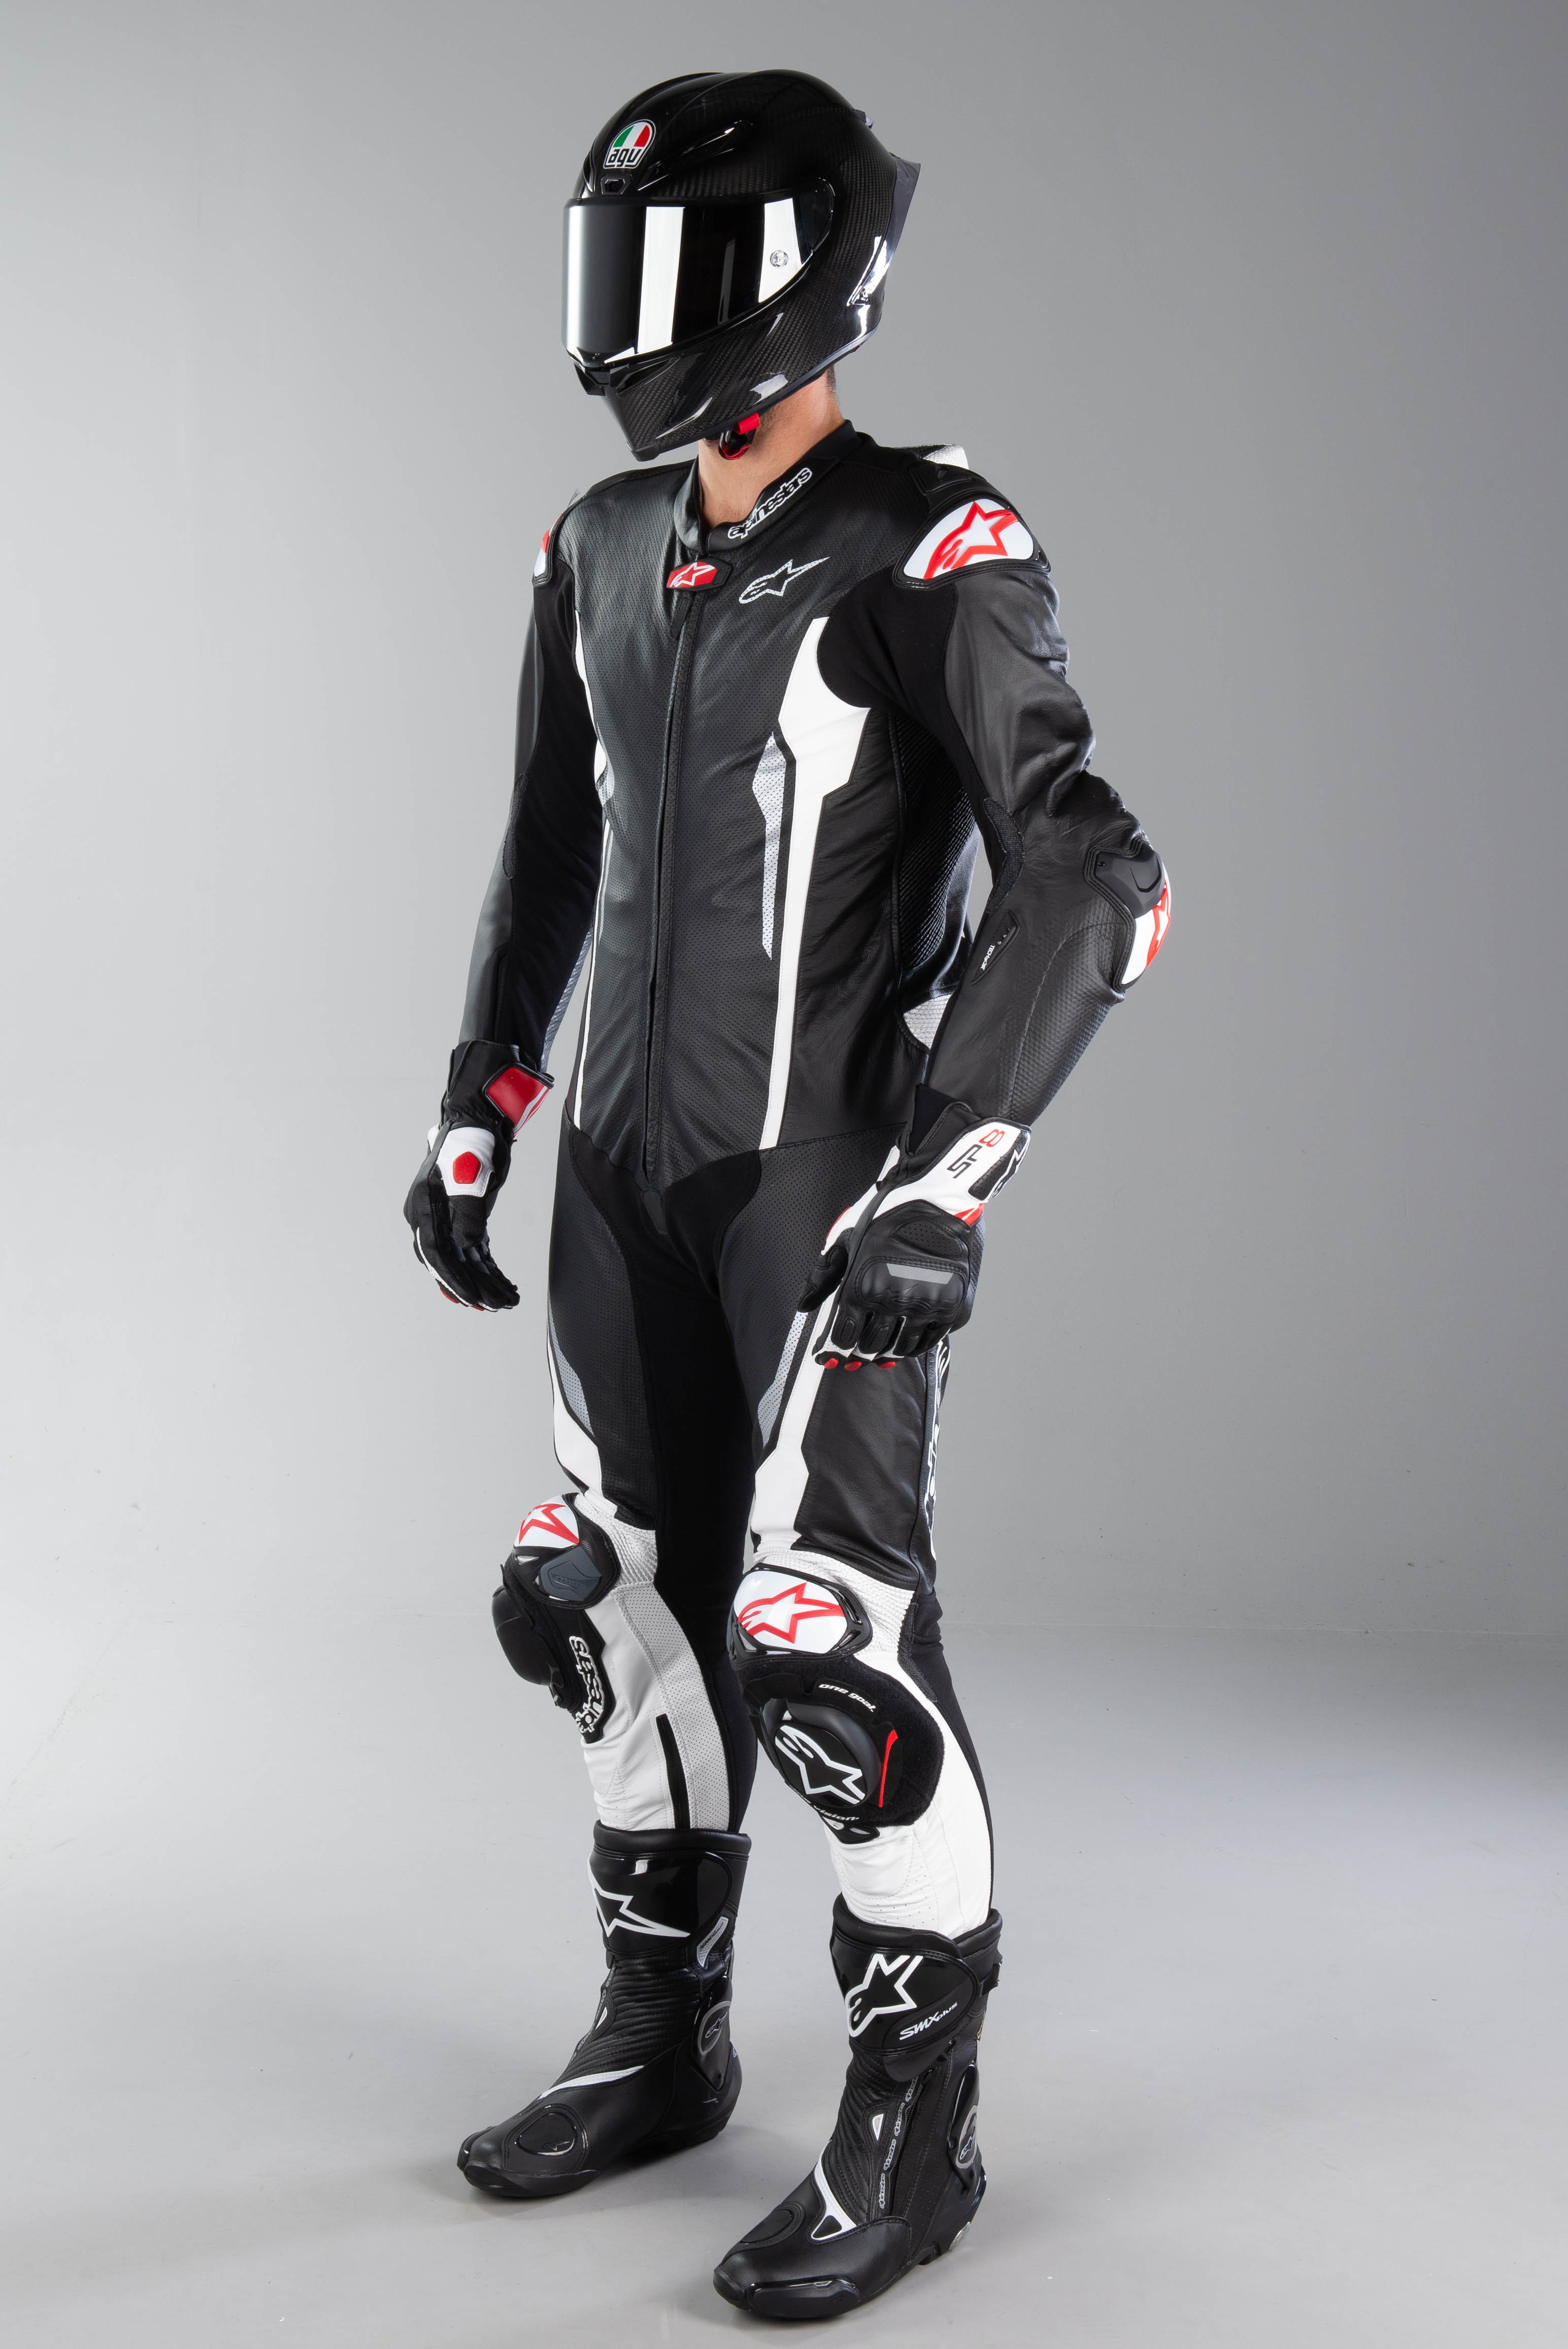 Alpinestars Racing Absolute One-Piece Leather Suit Tech Air Compatible Black//White 50